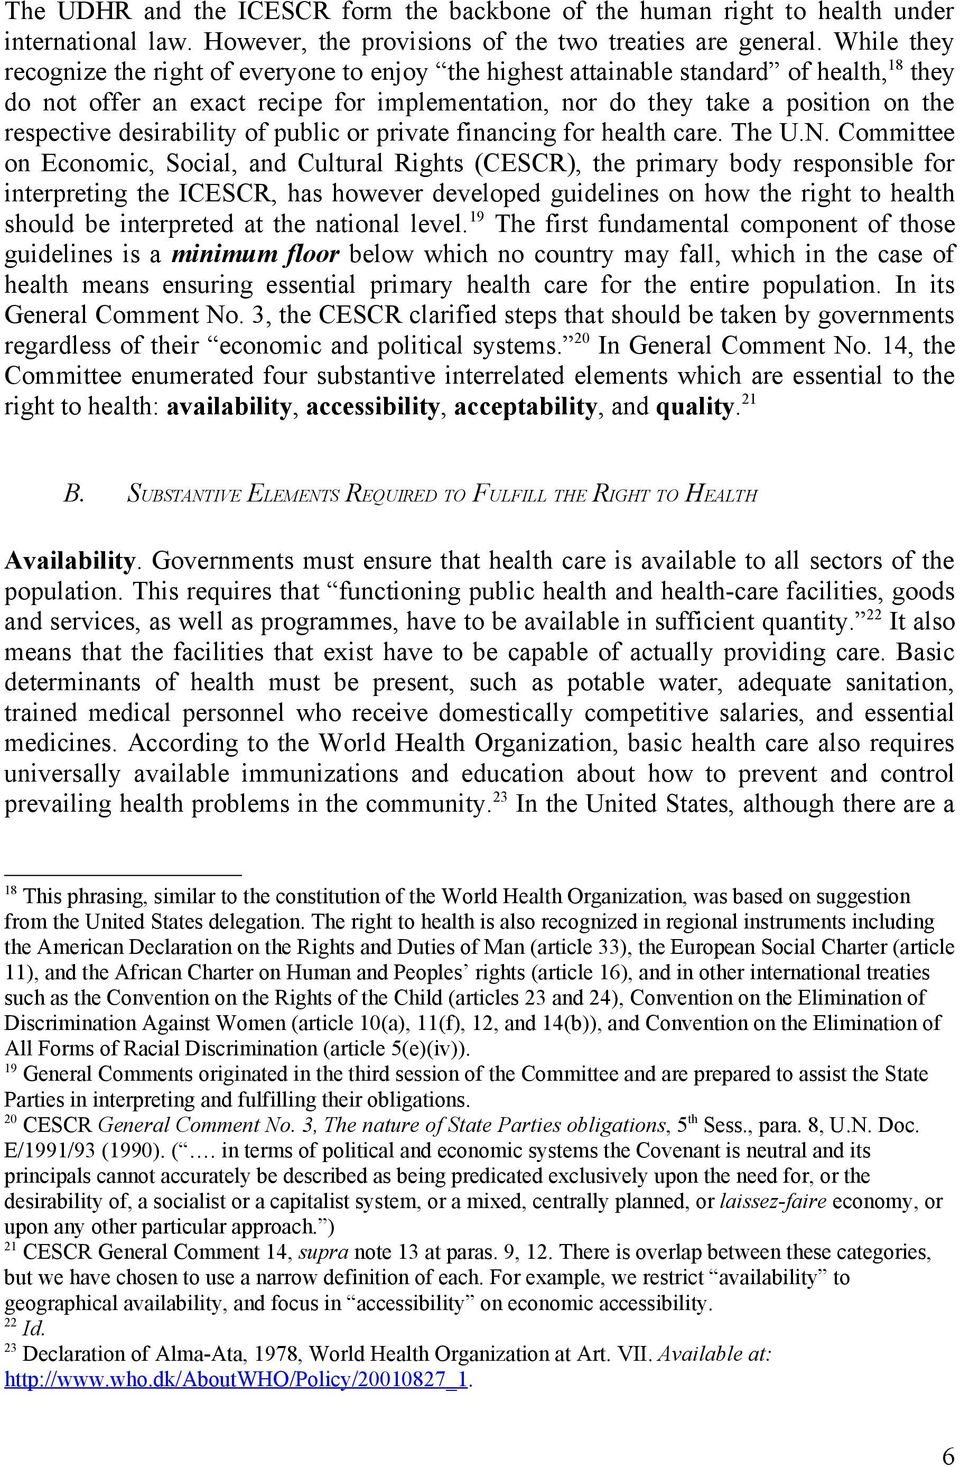 desirability of public or private financing for health care. The U.N.